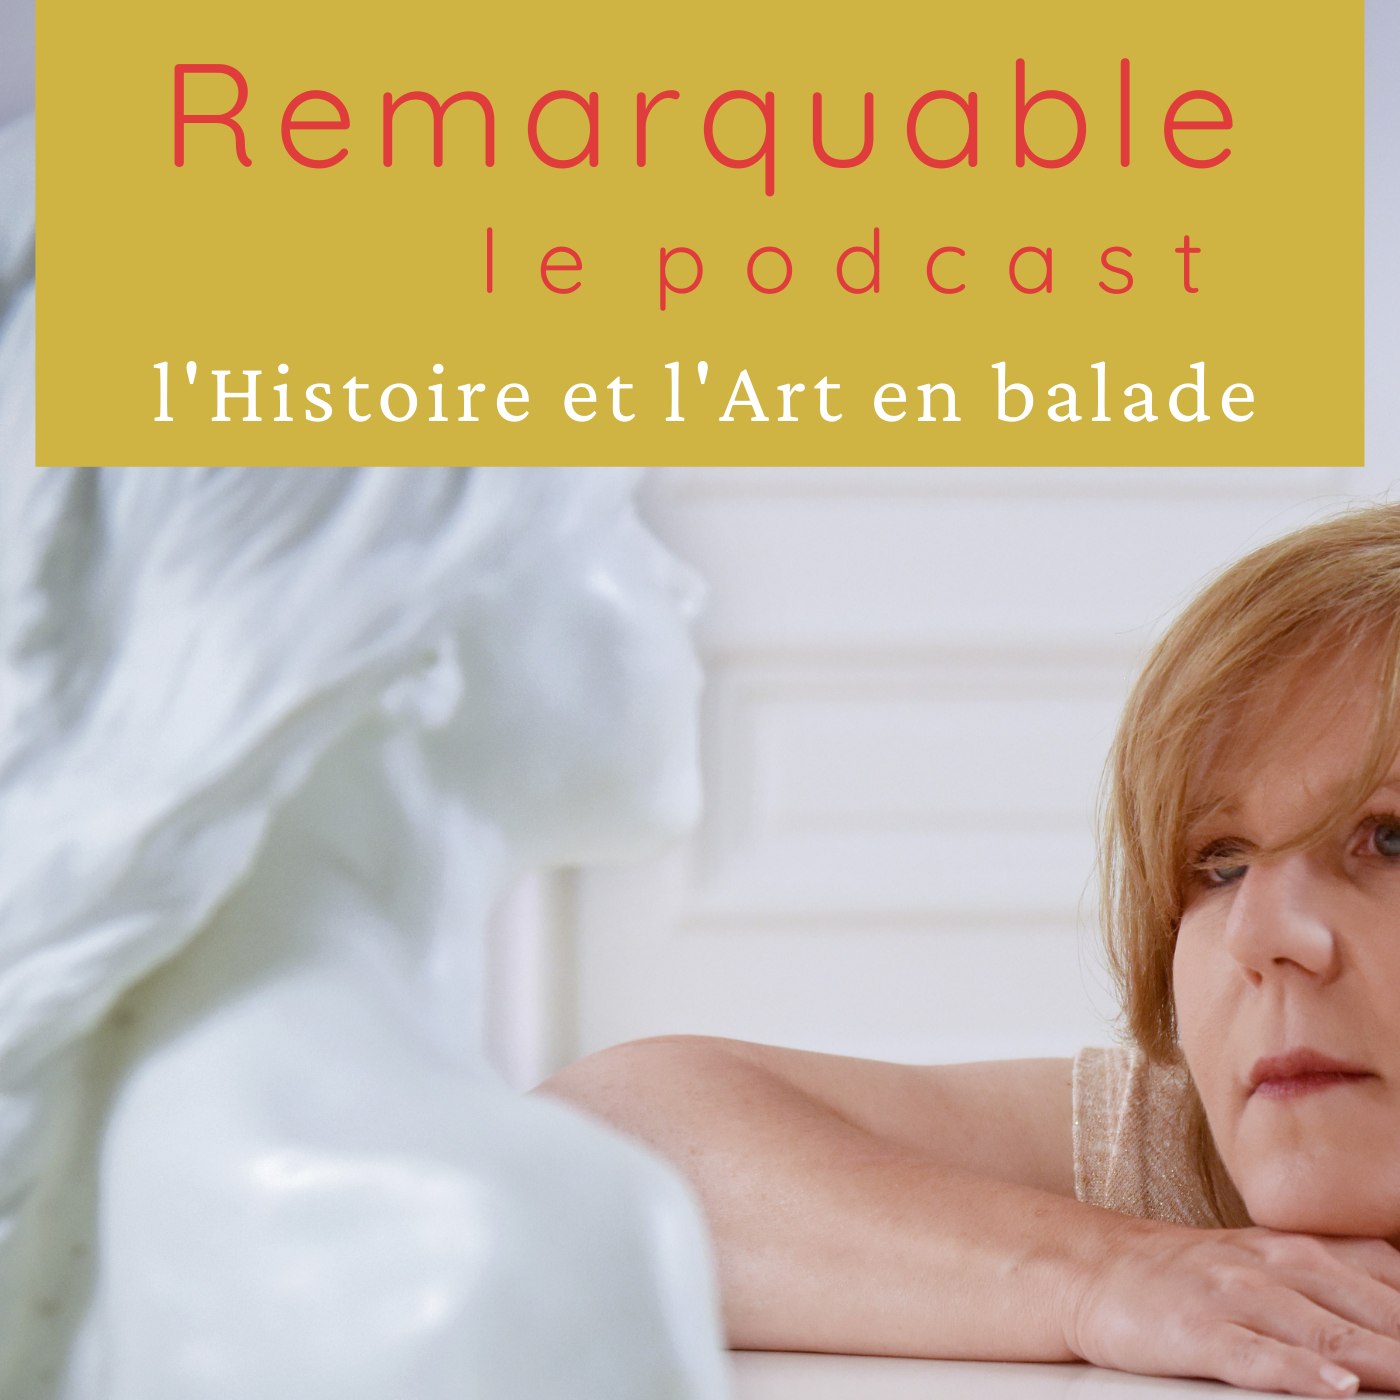 Remarquable